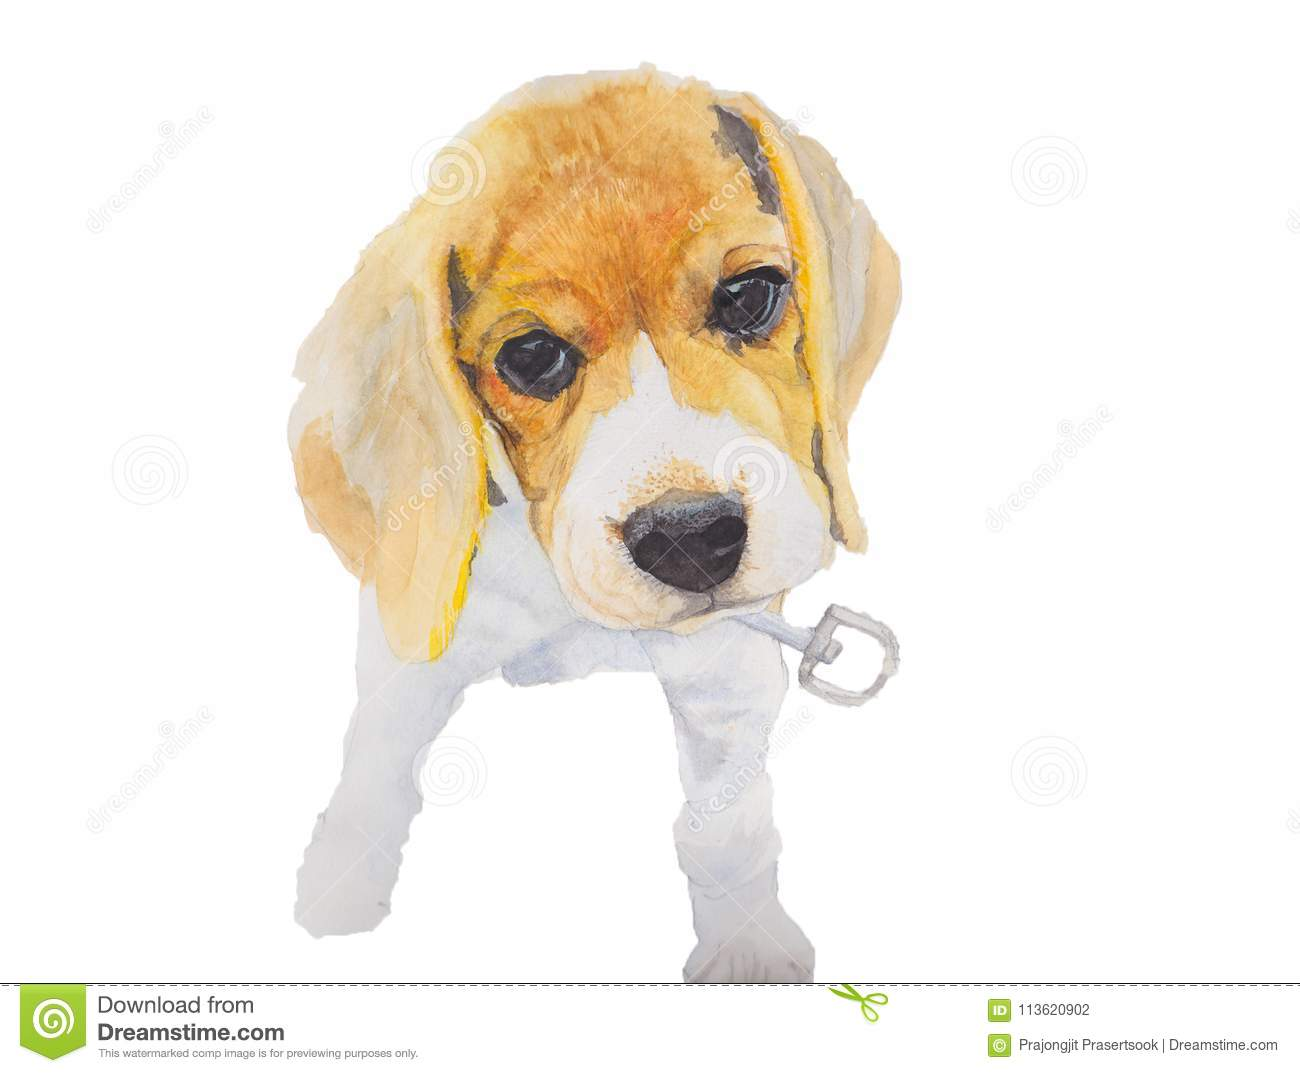 Dog Isolated On White Background Beagle Dog Hand Painted Watercolor Illustration Stock Illustration Illustration Of Beagle Drawn 113620902